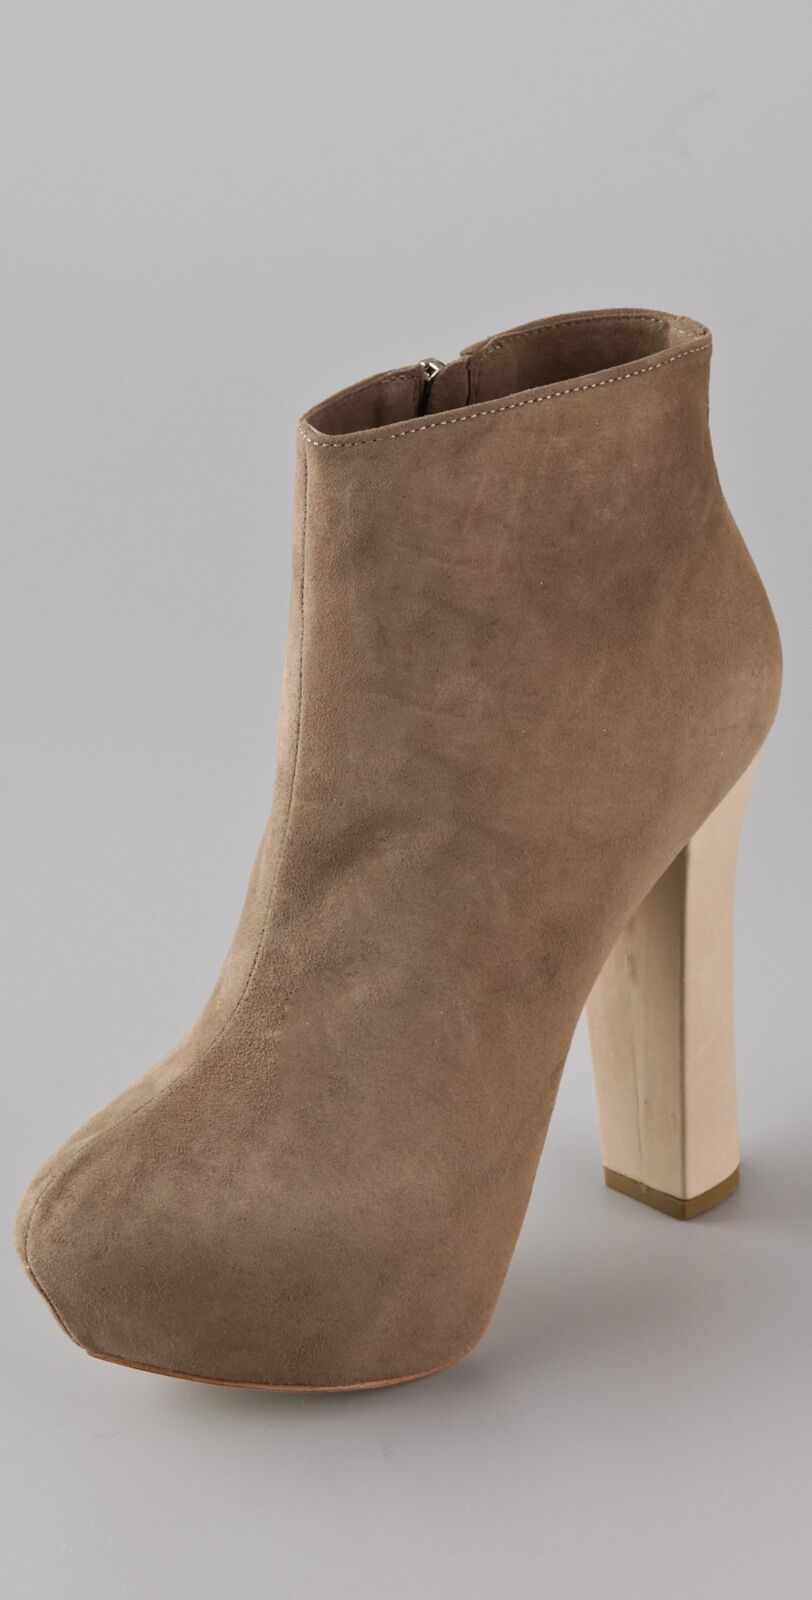 NWB  265 Report Signature Ankle Boots Booties Layton Layton Layton Suede Platform 7.5 taupe 09cc6e